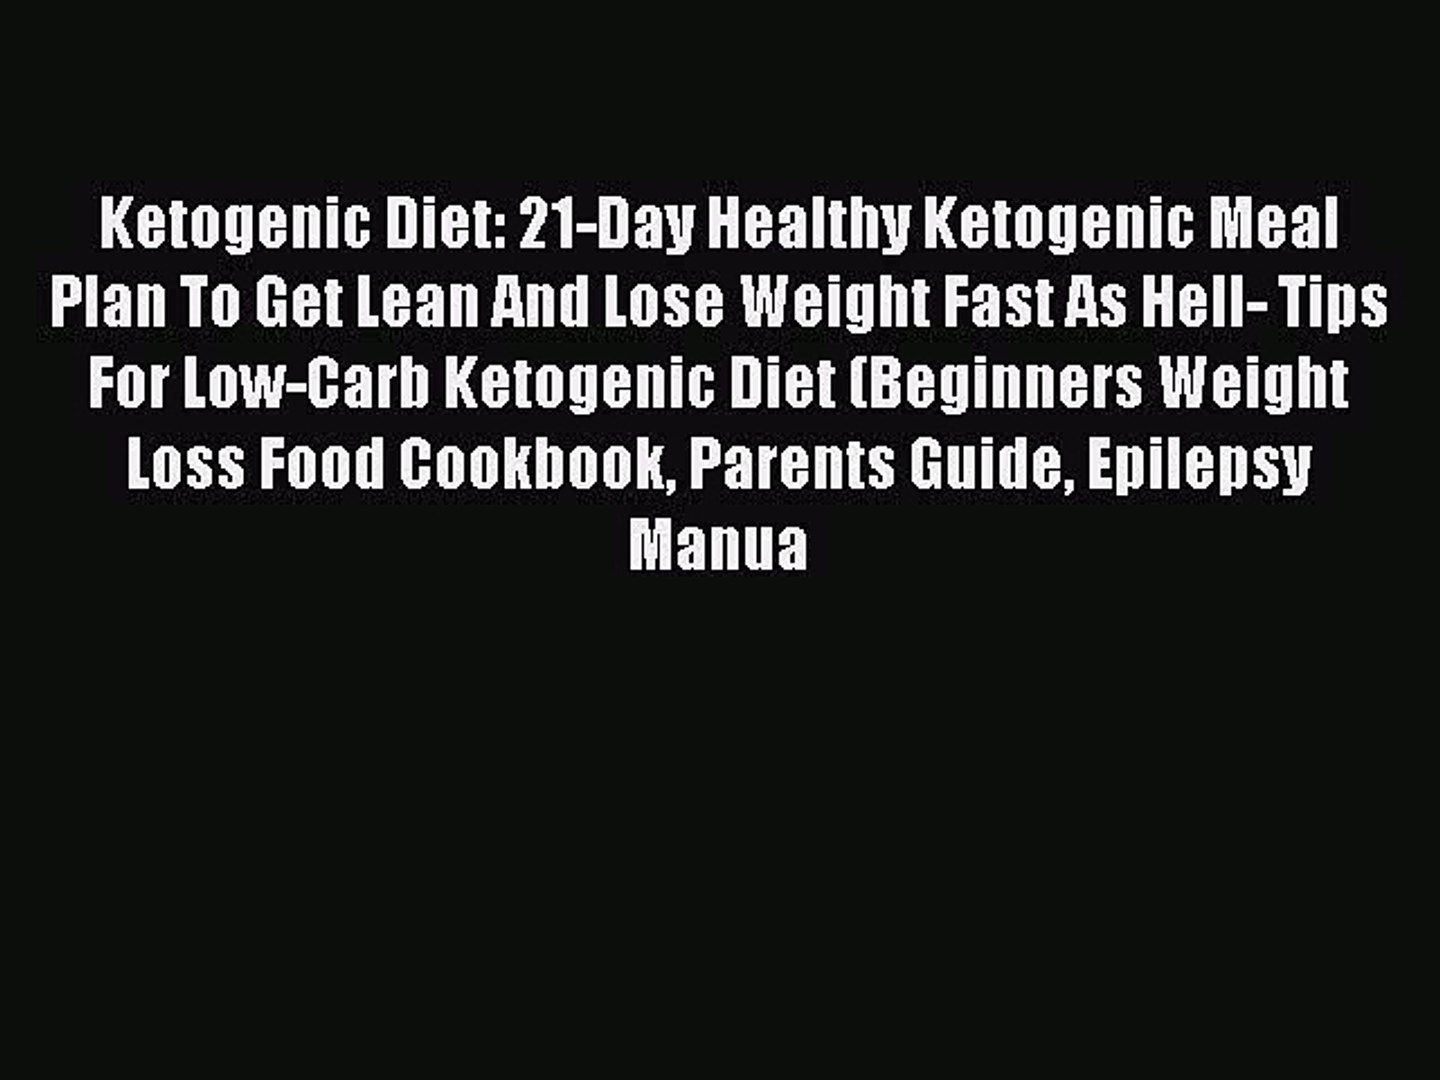 Read Book Ketogenic Diet 21 Day Healthy Ketogenic Meal Plan To Get Lean And Lose Weight Fast Video Dailymotion